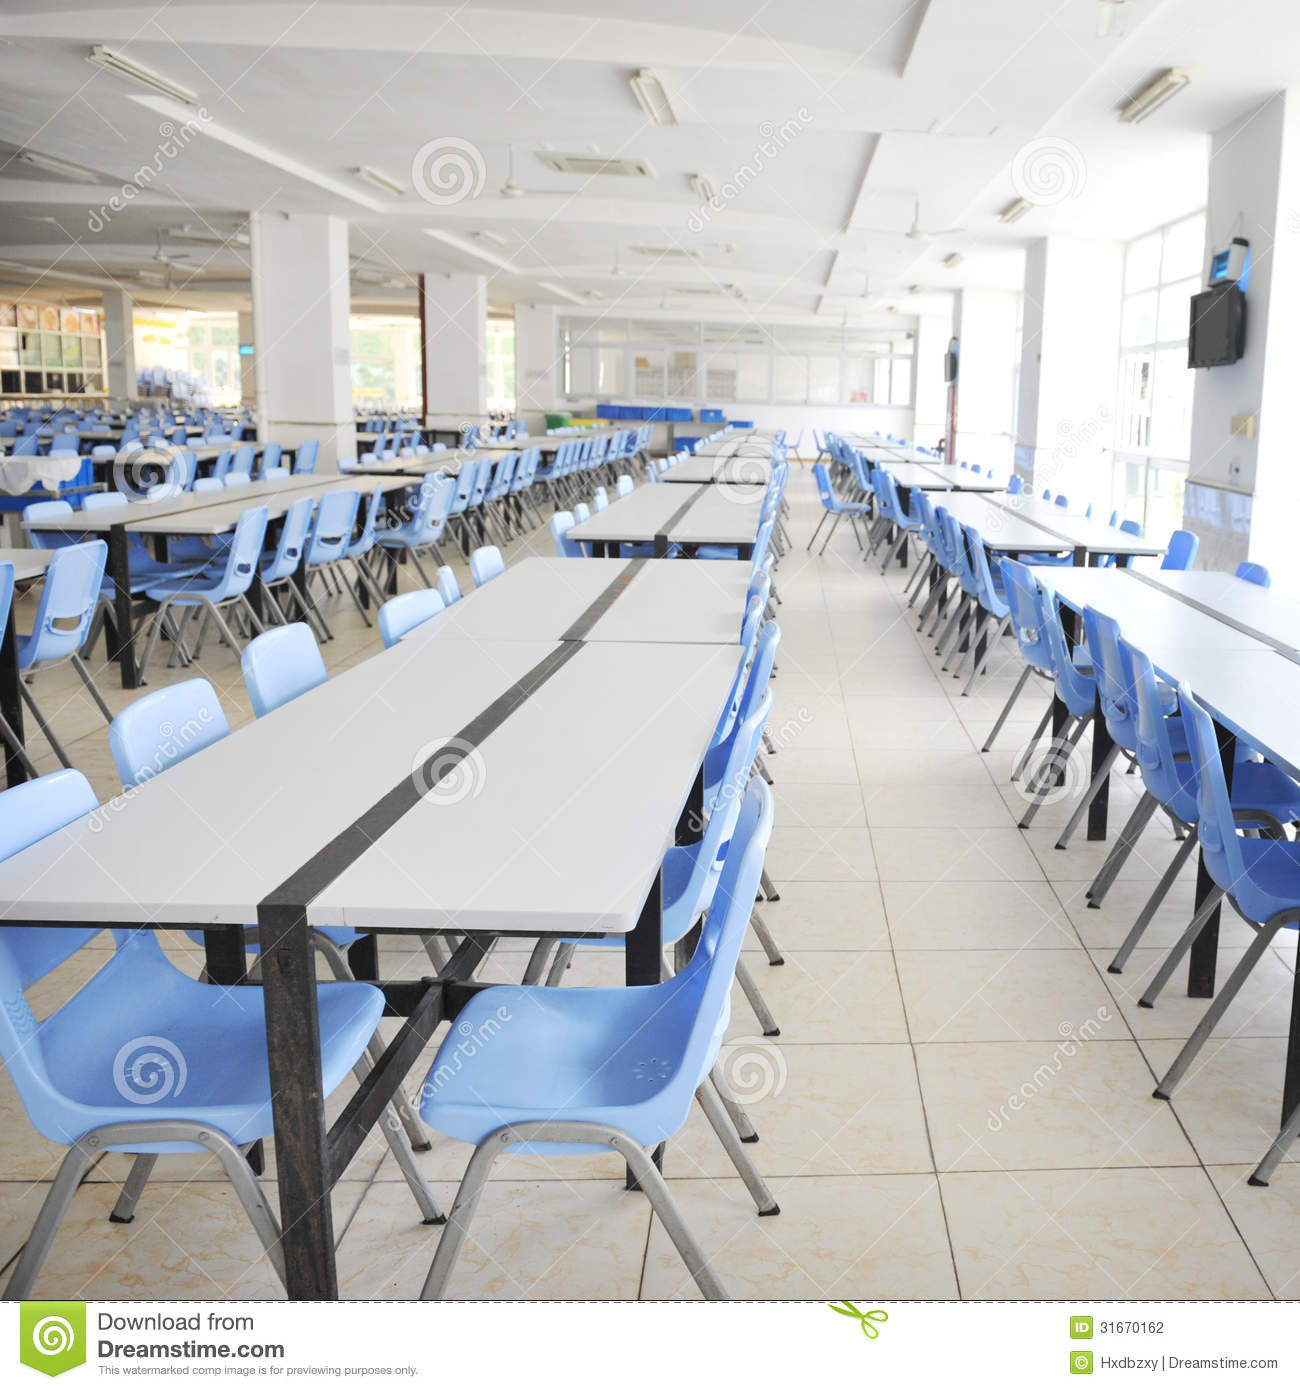 Clean cafeteria tables - Cafeteria Clean